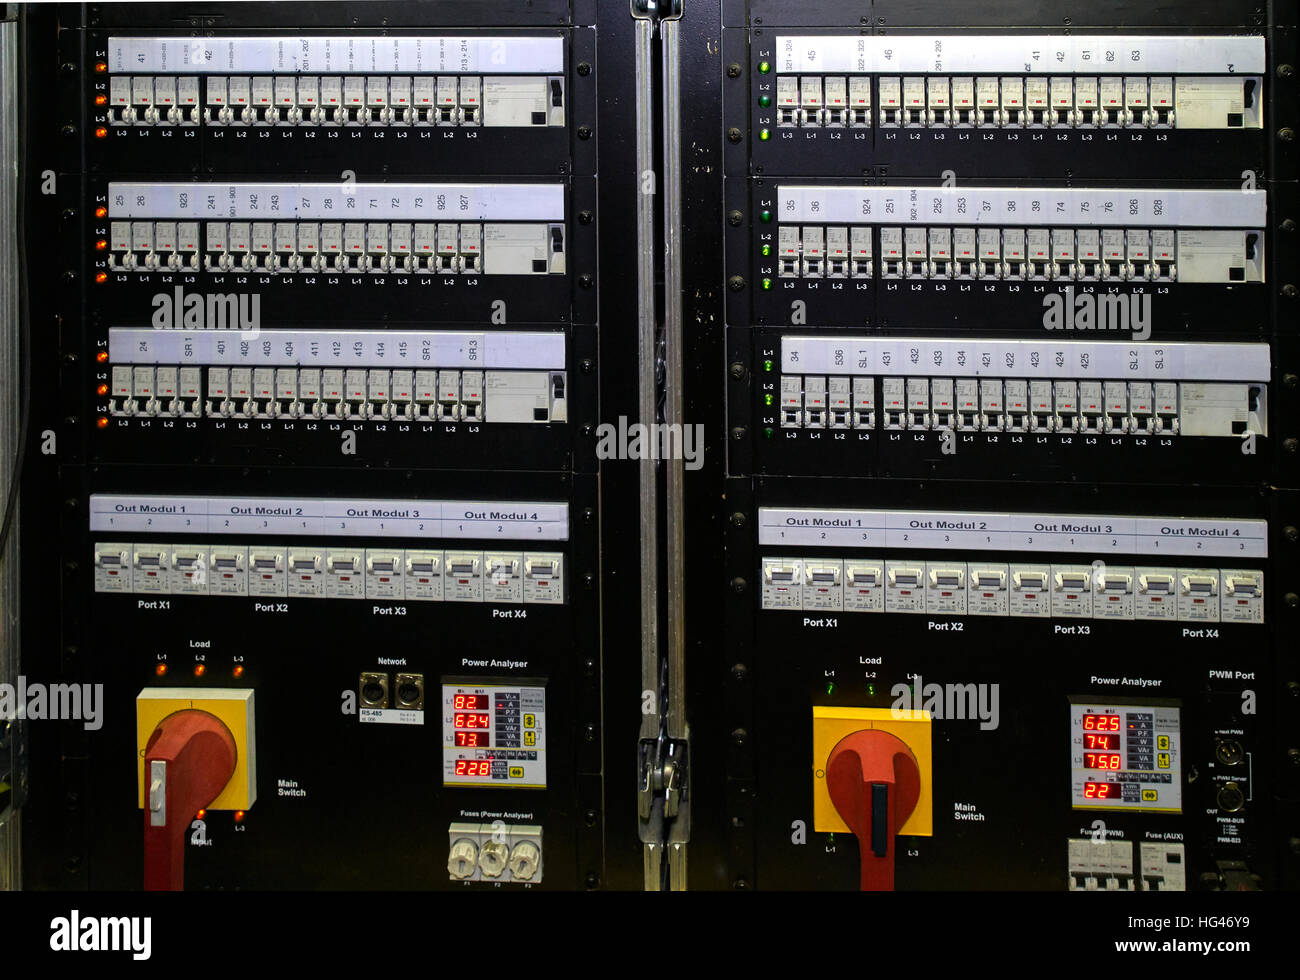 fuse box with switch and lights. - Stock Image